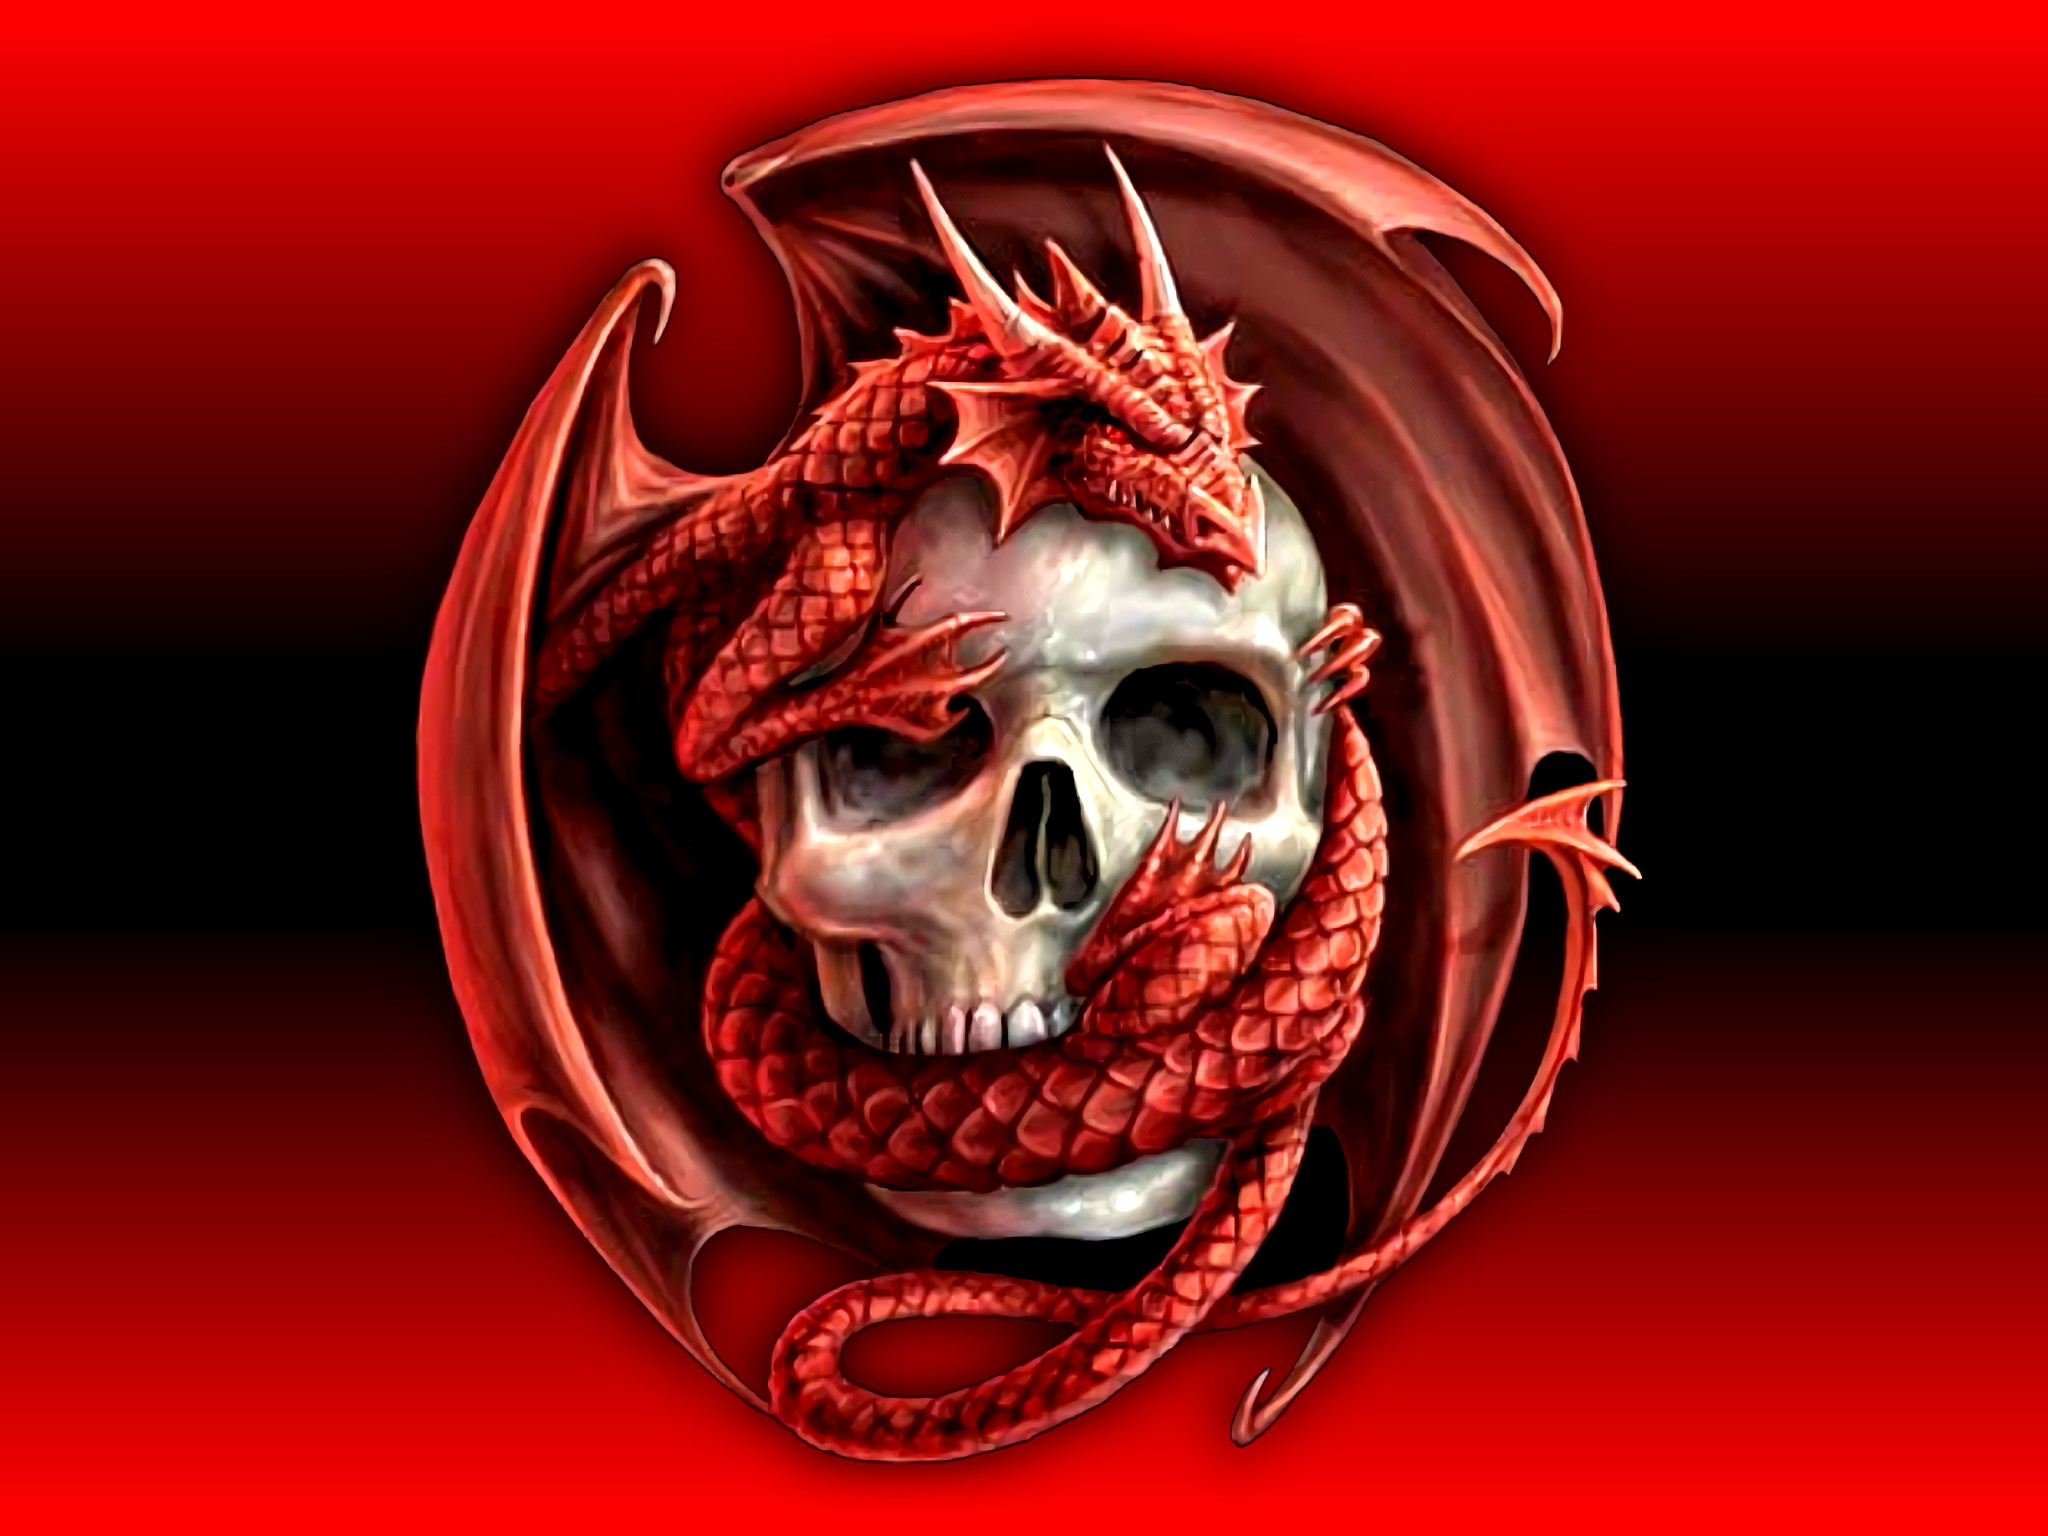 Download free skull wallpapers for your mobile phone most